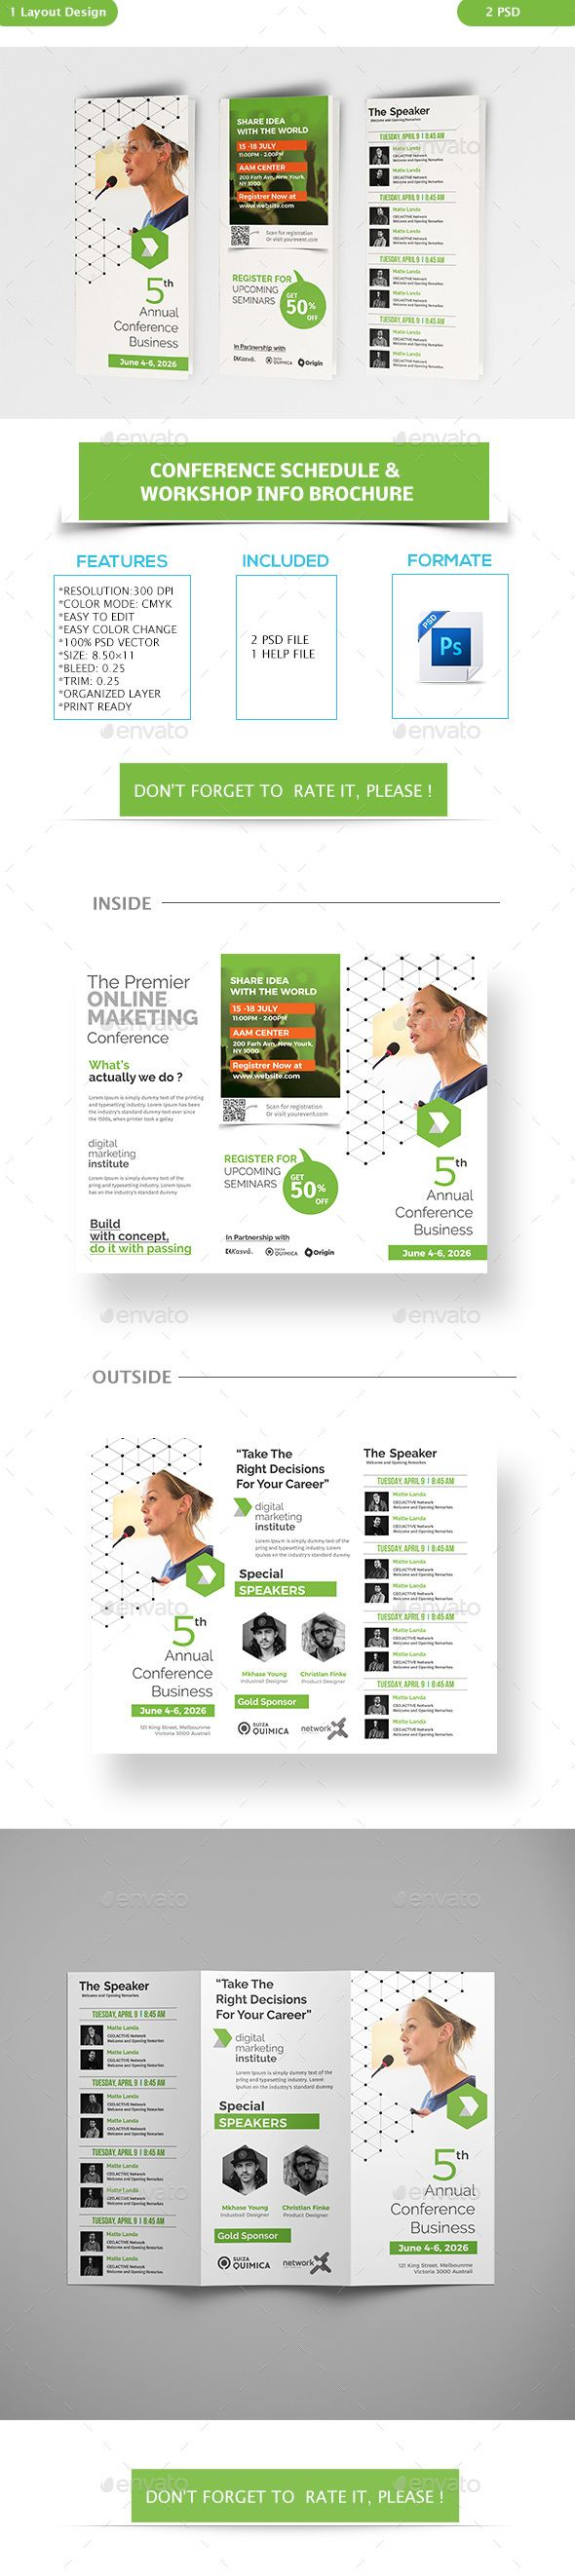 Conference Schedule Workshop Info Brochure Template PSD Download - Workshop brochure template